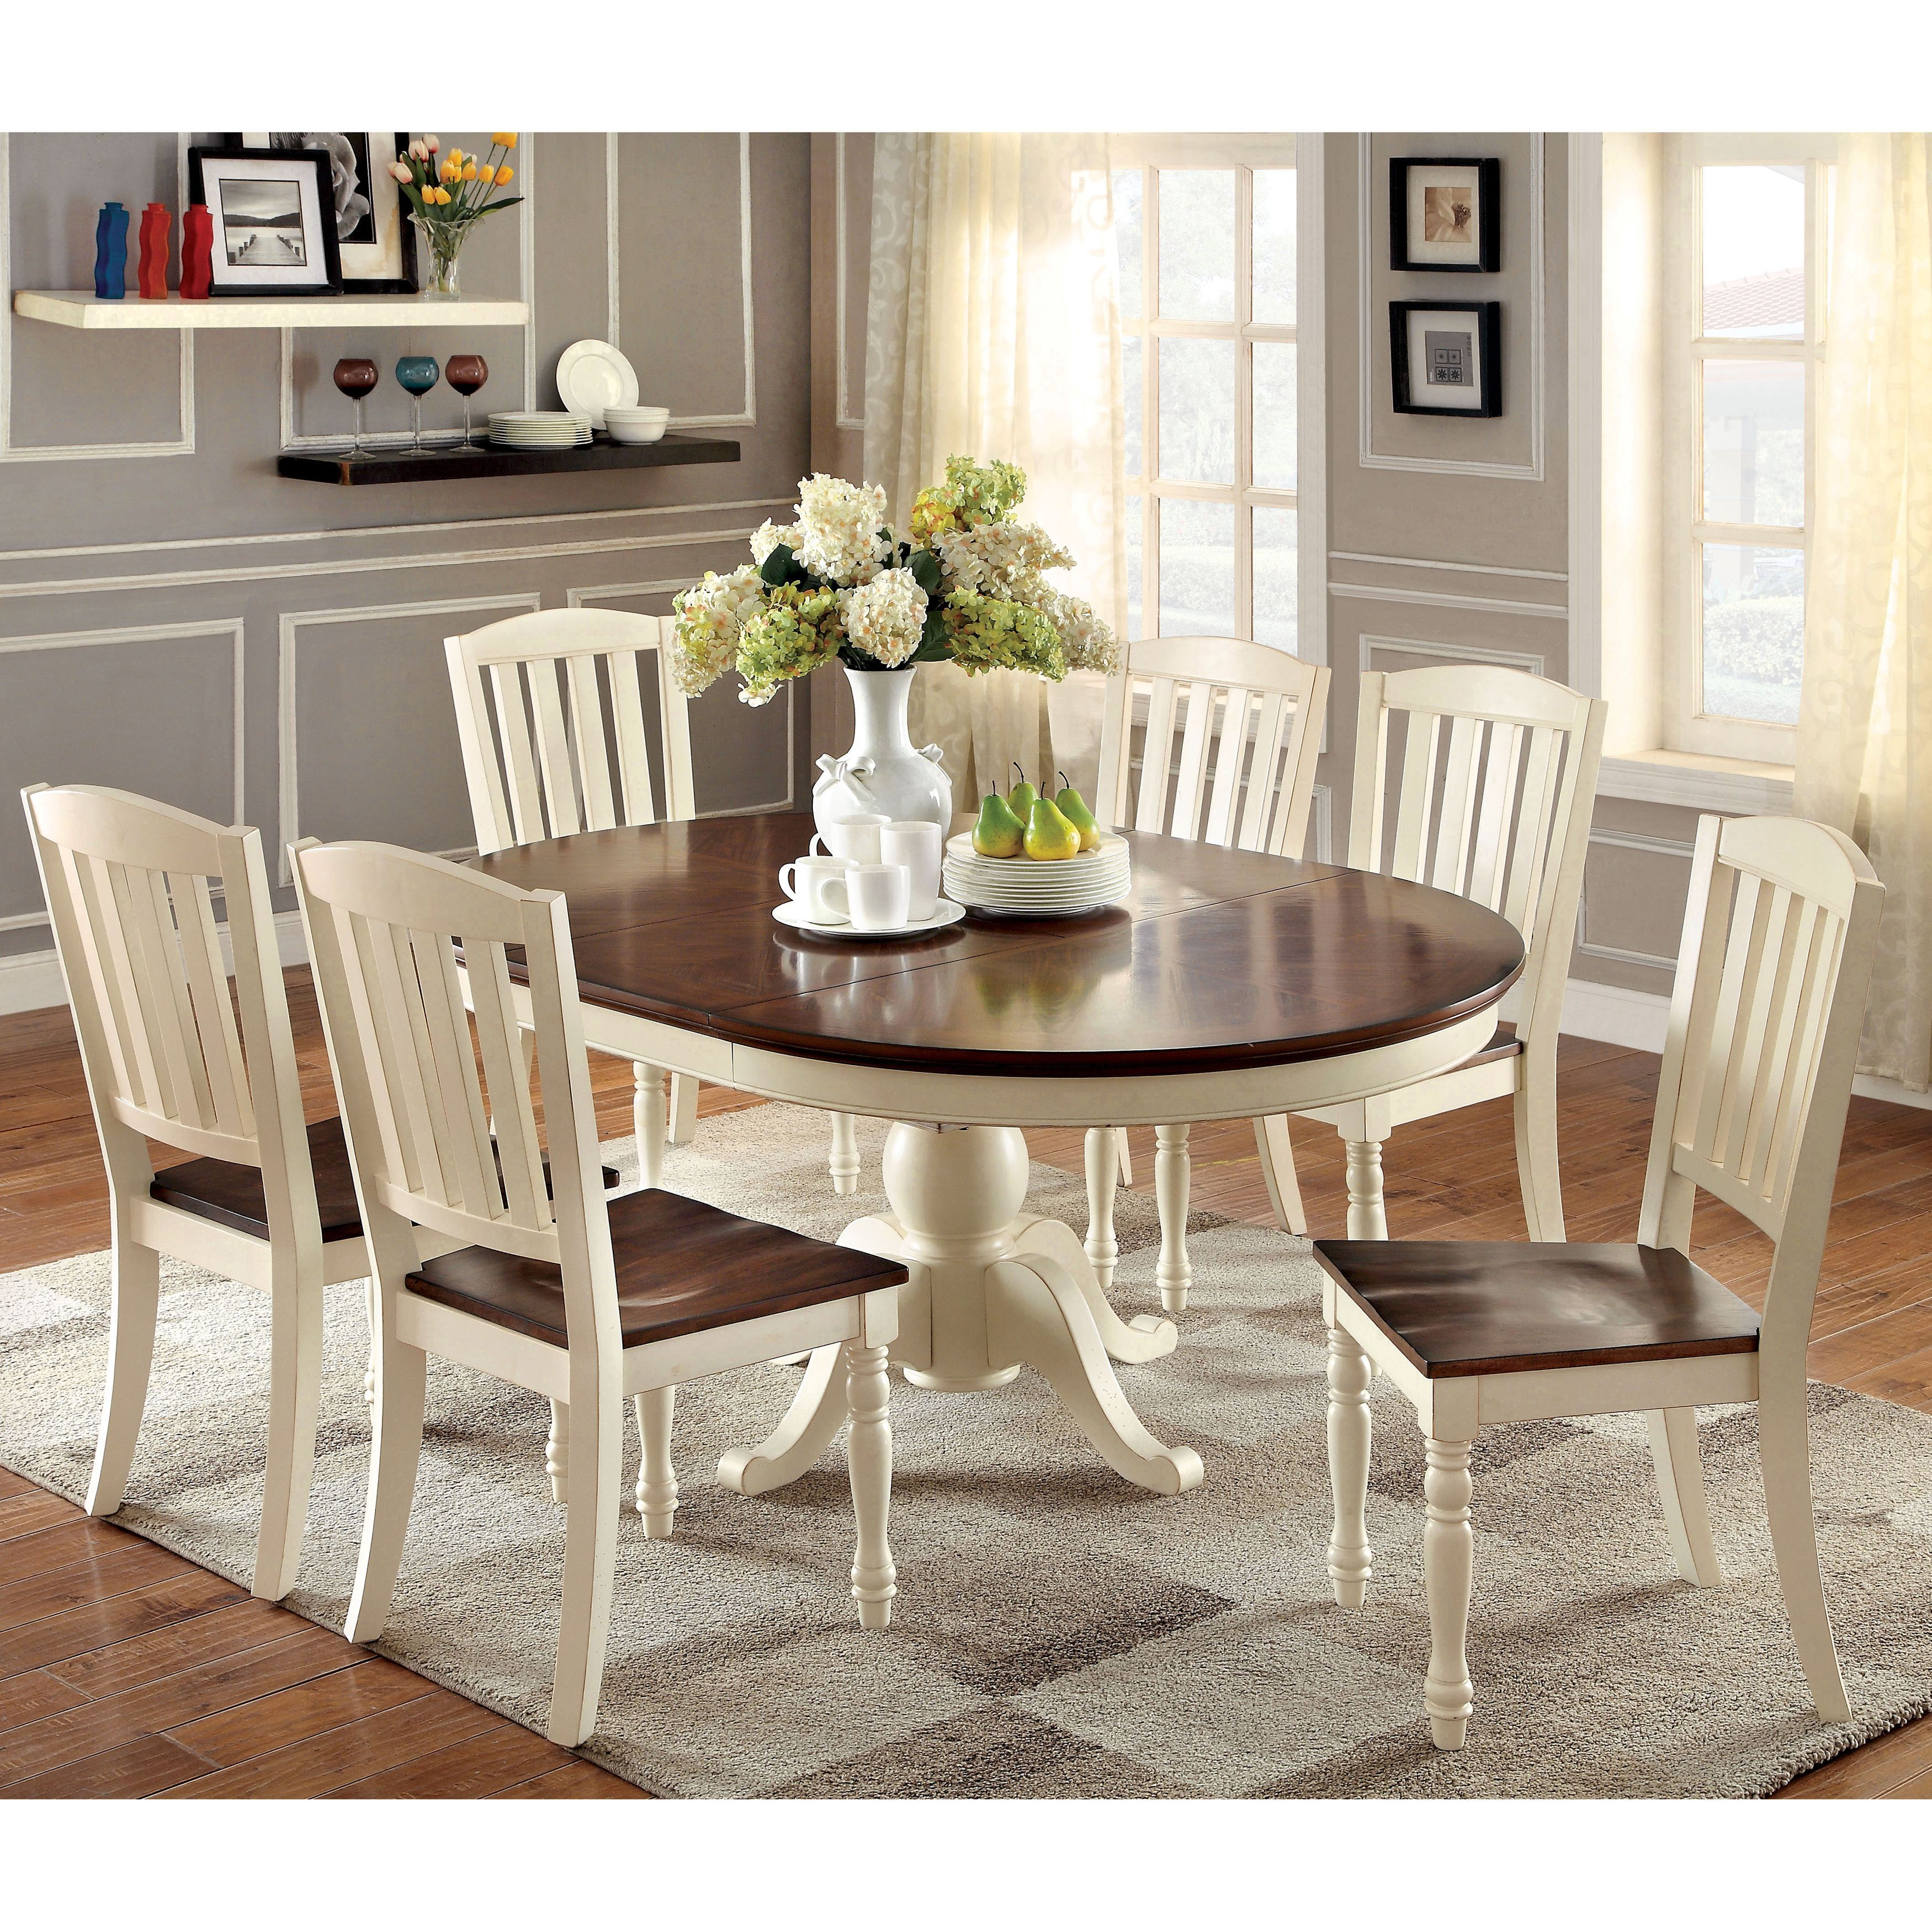 Kitchen Dining Tables Cabinets With Glass Furniture Of America Bethannie 7 Piece Cottage Style Oval Set Overstock Shopping Big Discounts On Sets